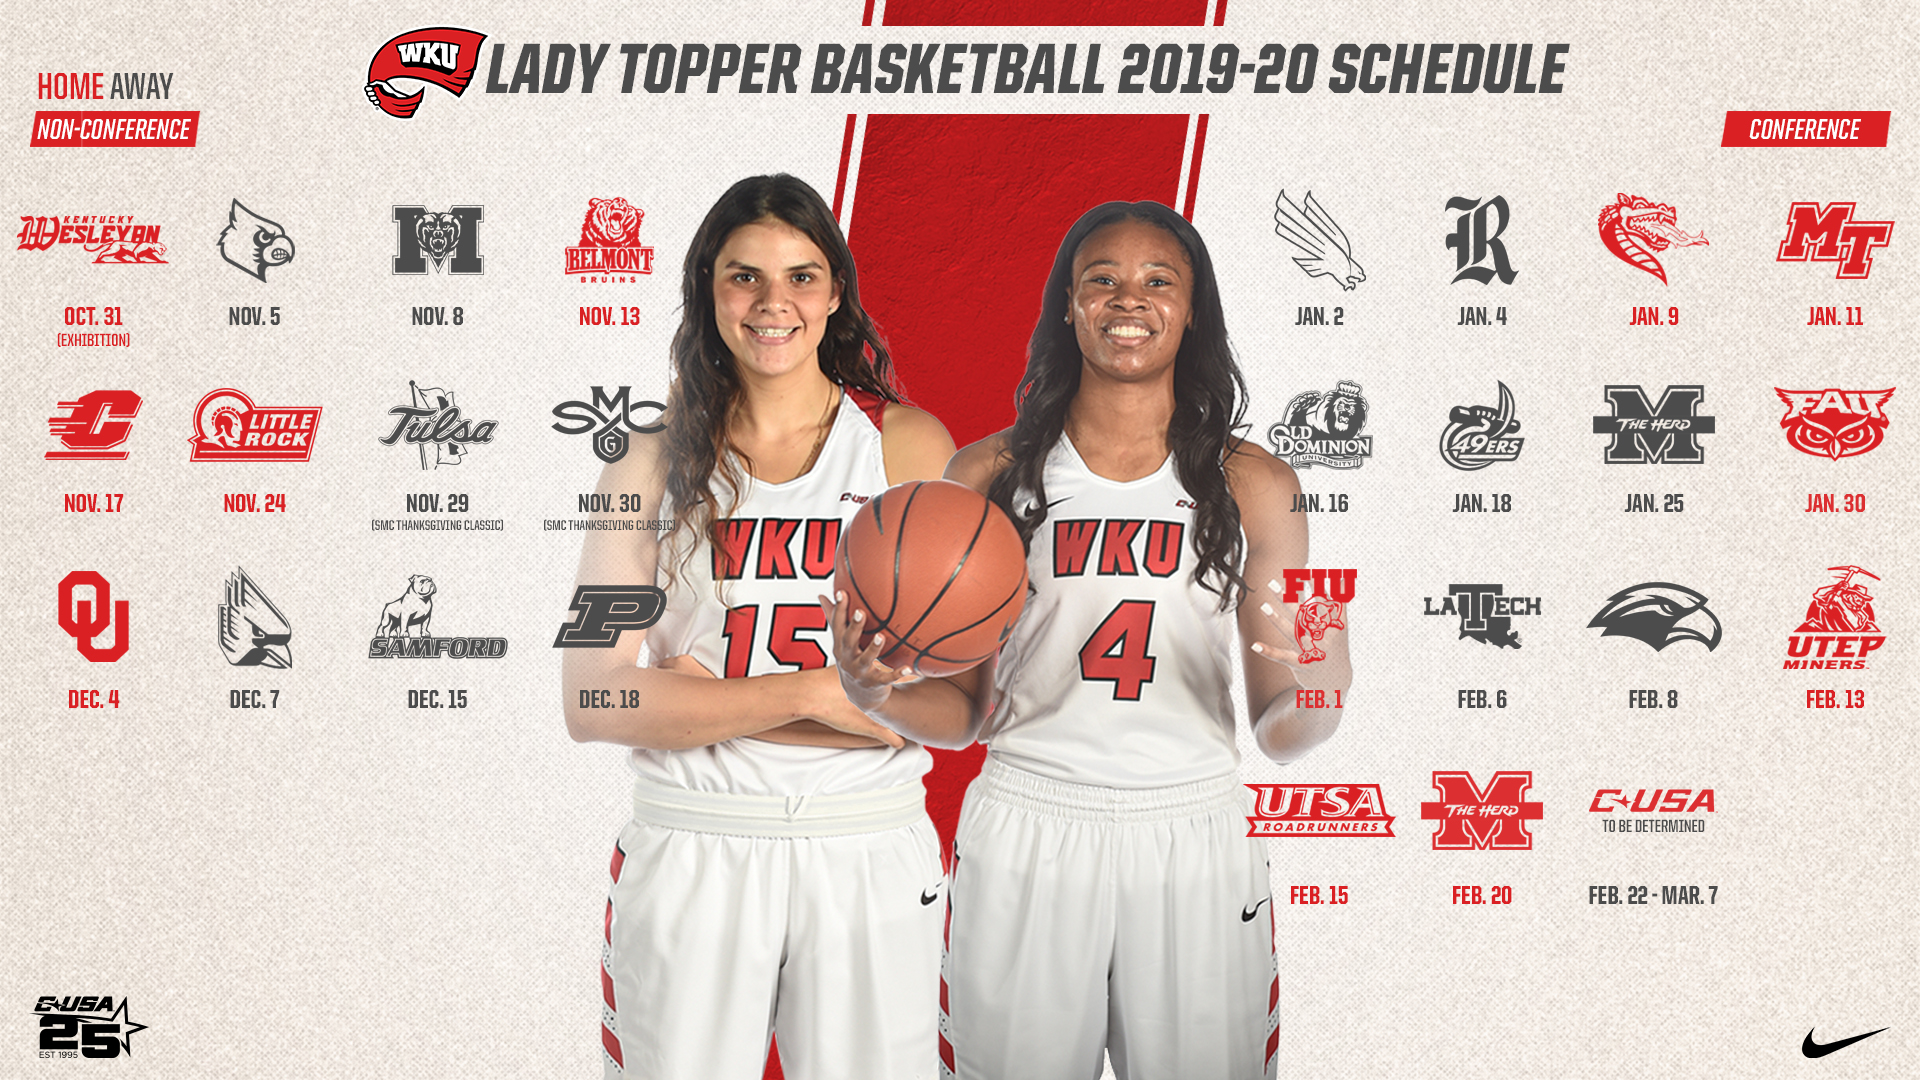 Lady Topper Basketball Announces Complete 2019 20 Schedule